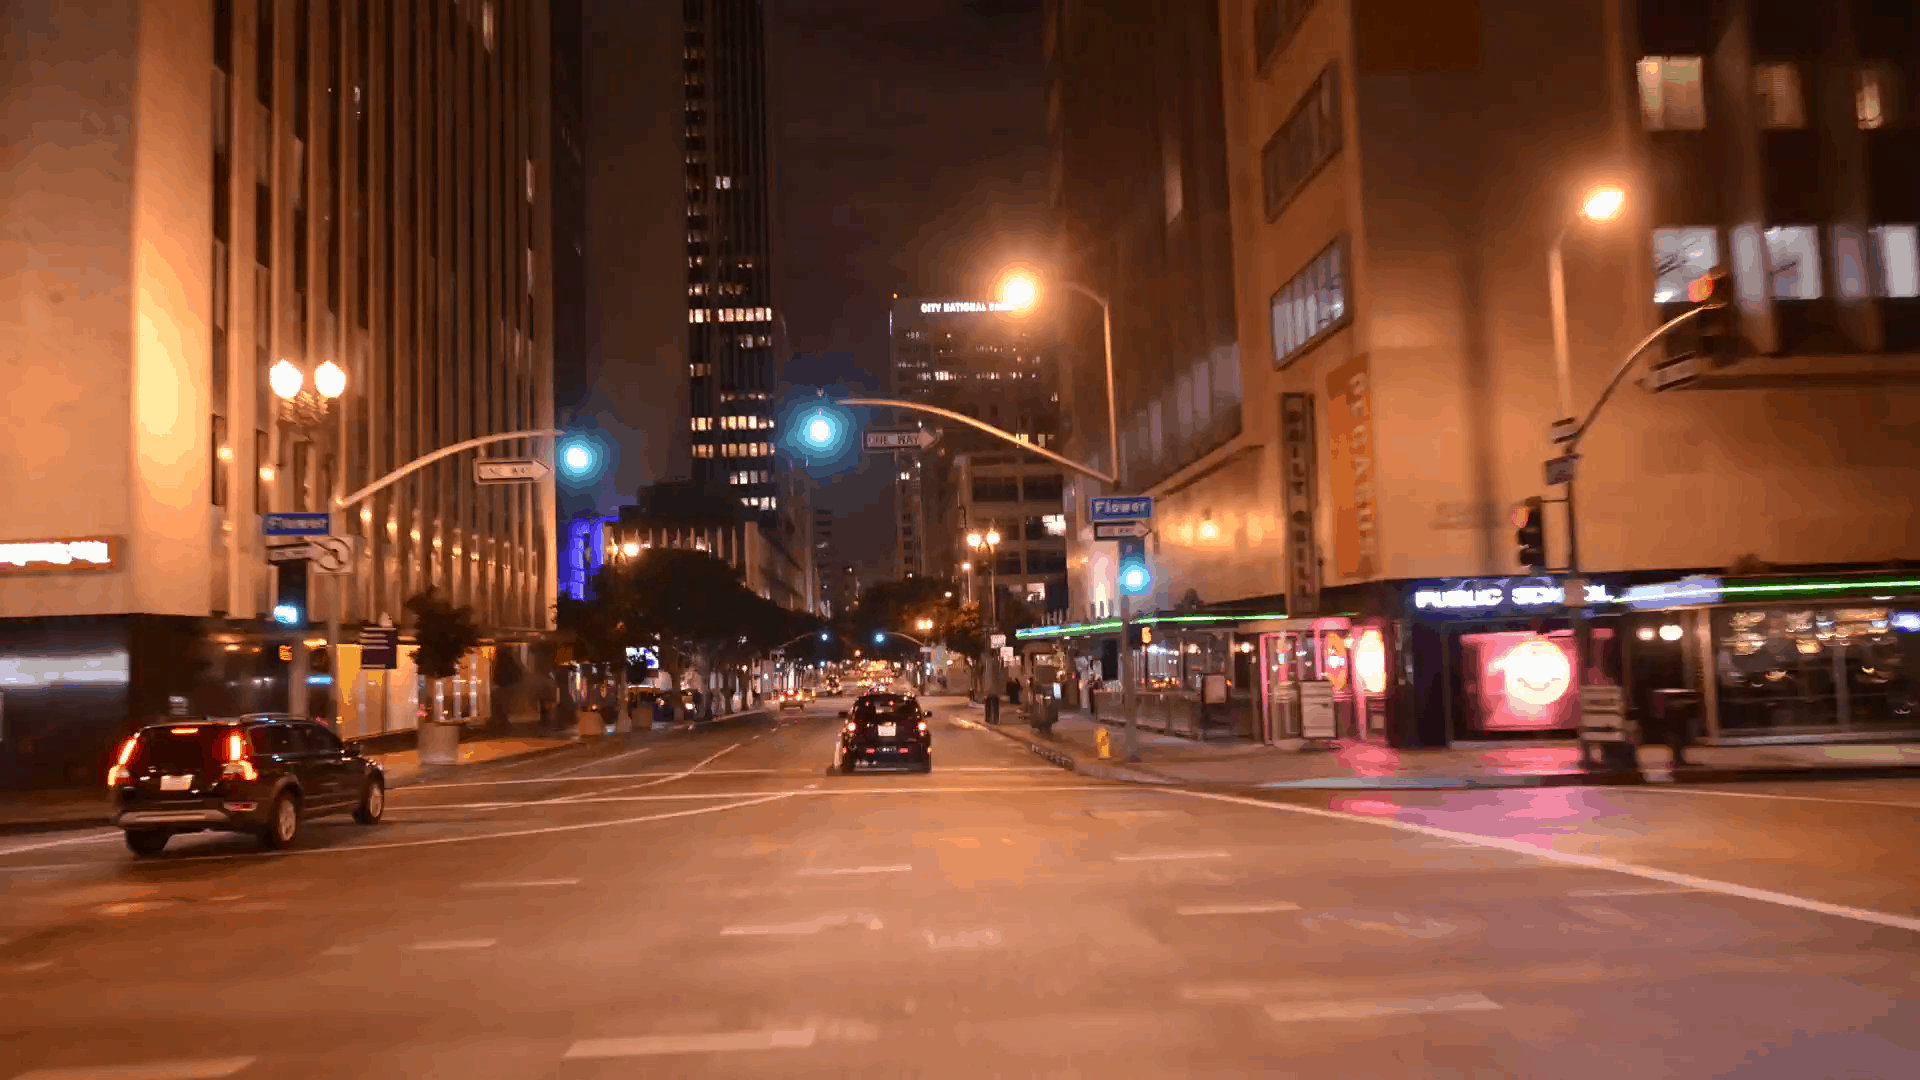 A Quick Guide for Lighting in Filmmaking - An image showing an example of street lighting